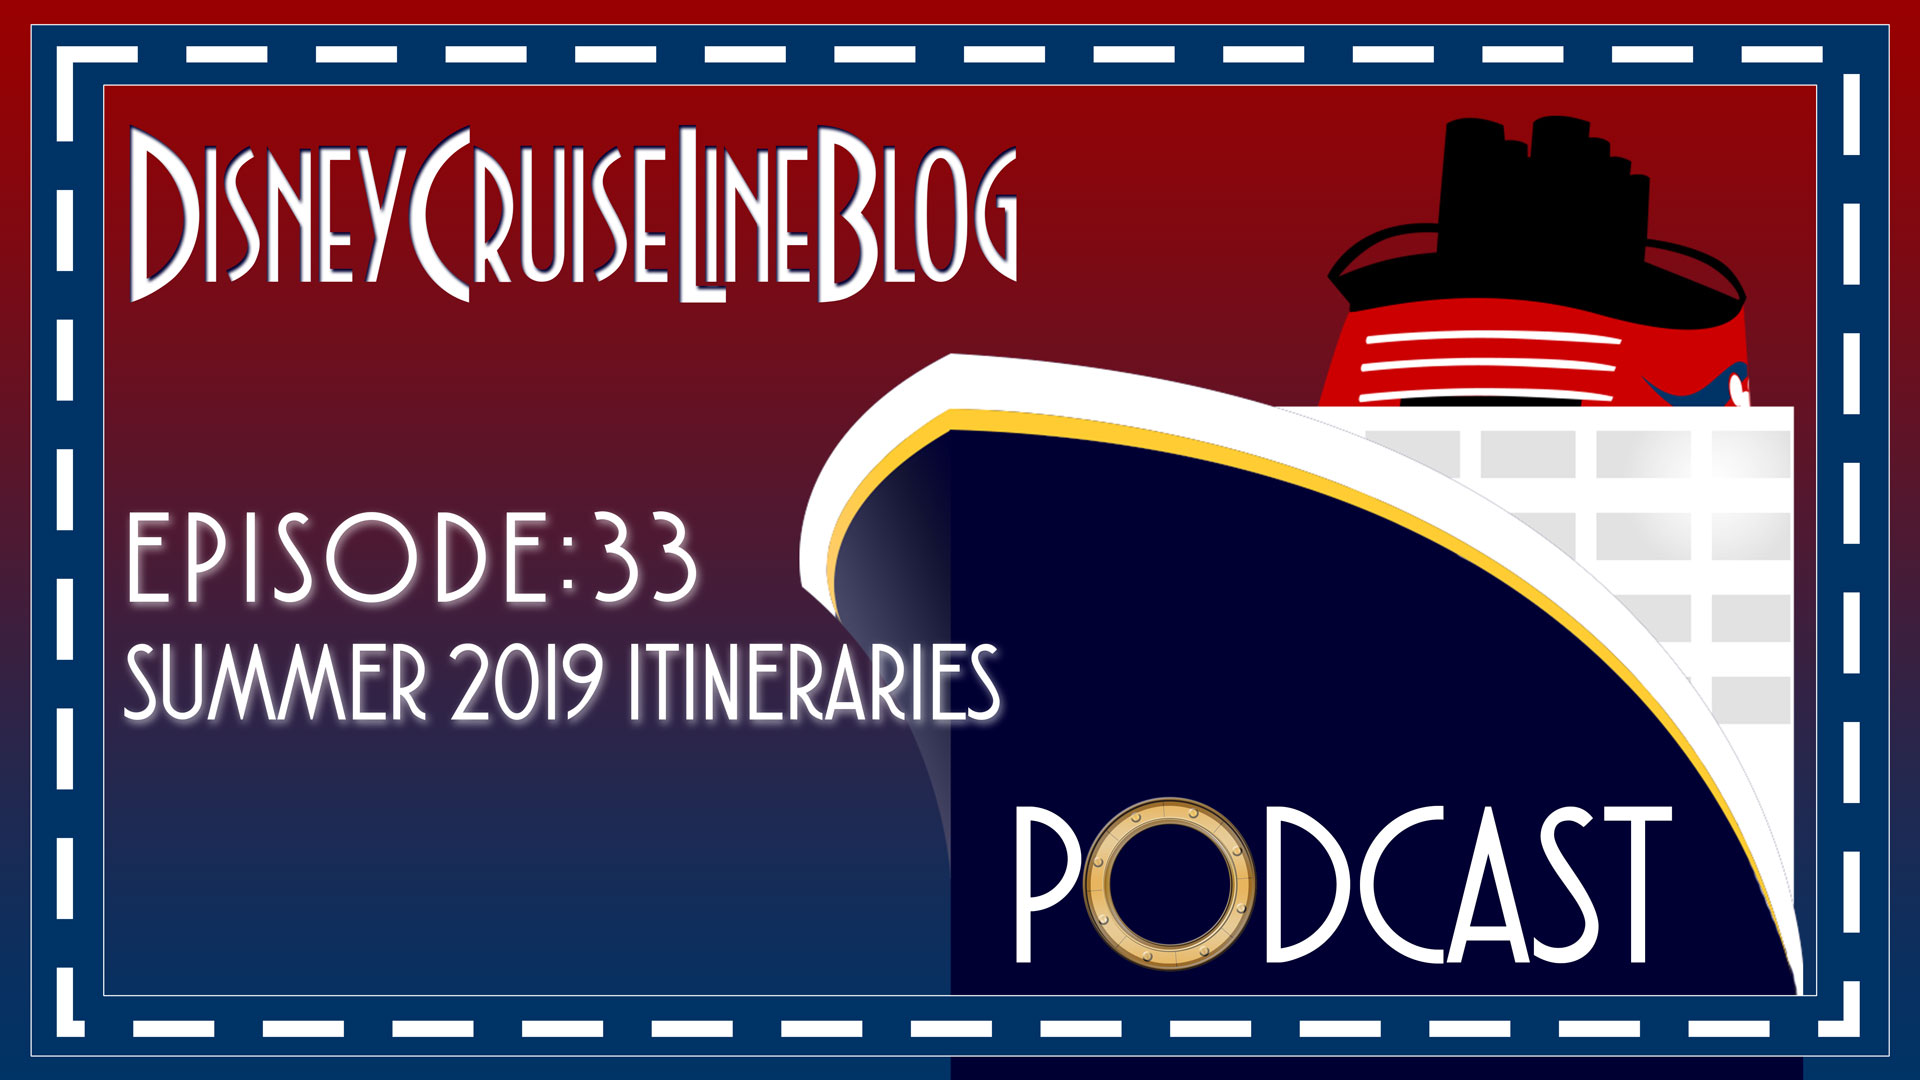 DCL Blog Podcast Episode 33 Summer 2019 Itineraries